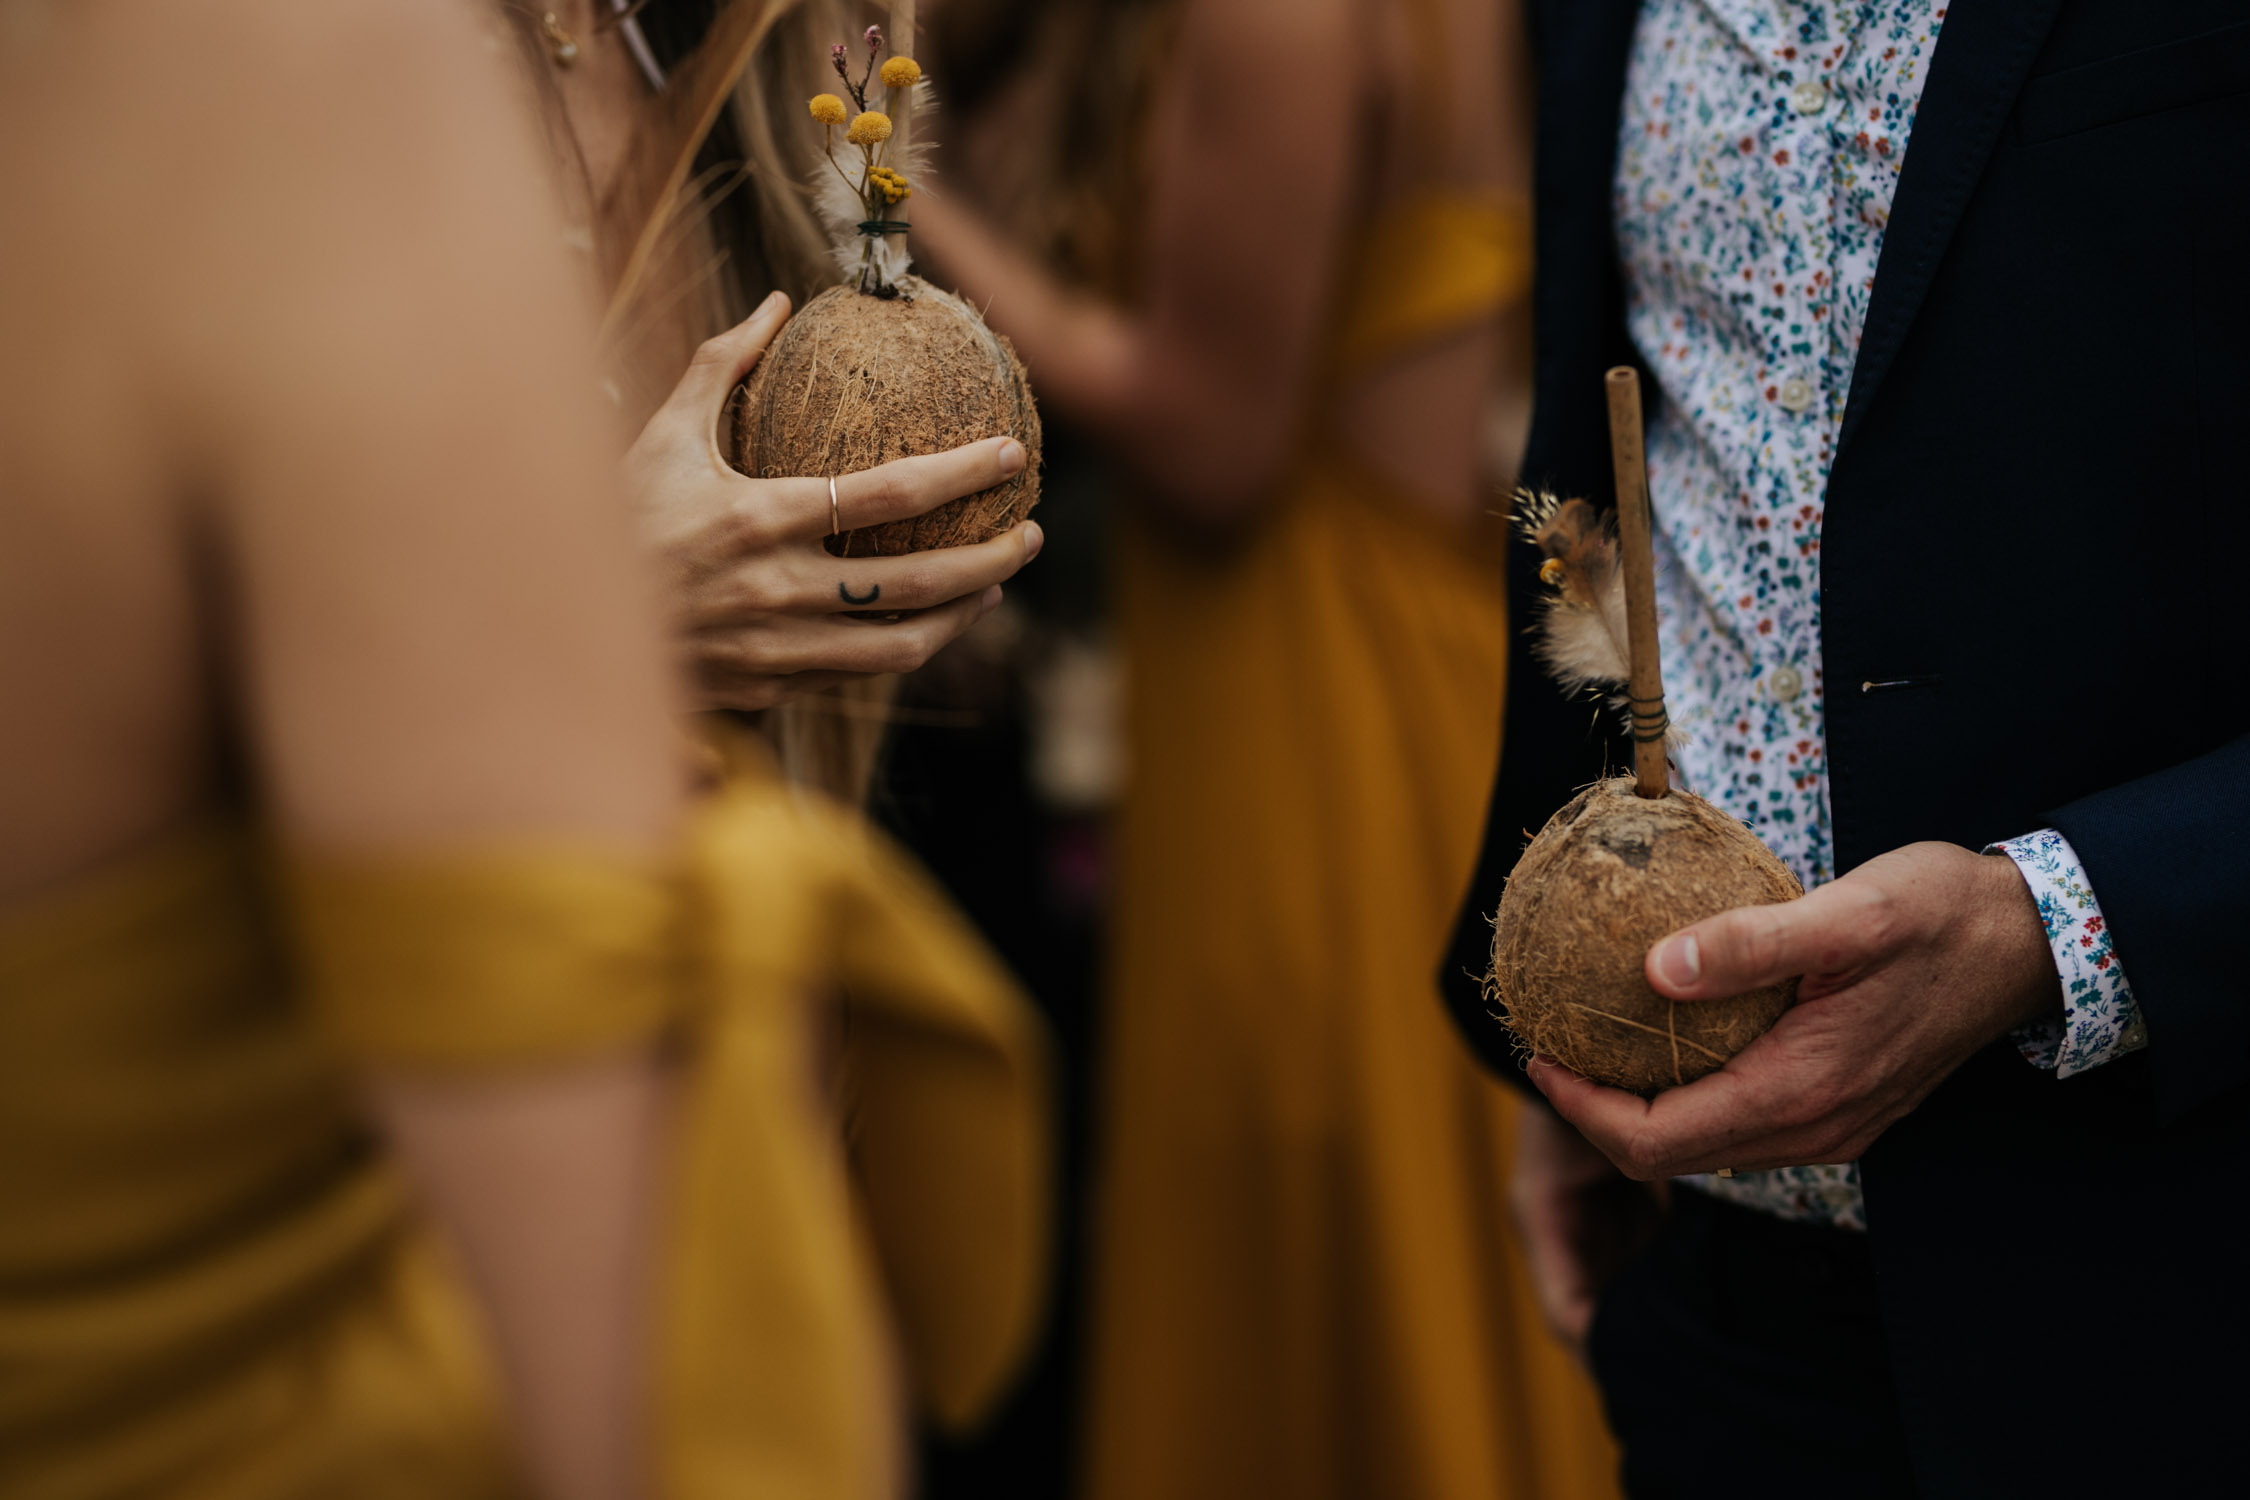 Real coconuts after boho wedding ceremony for cocktail hour